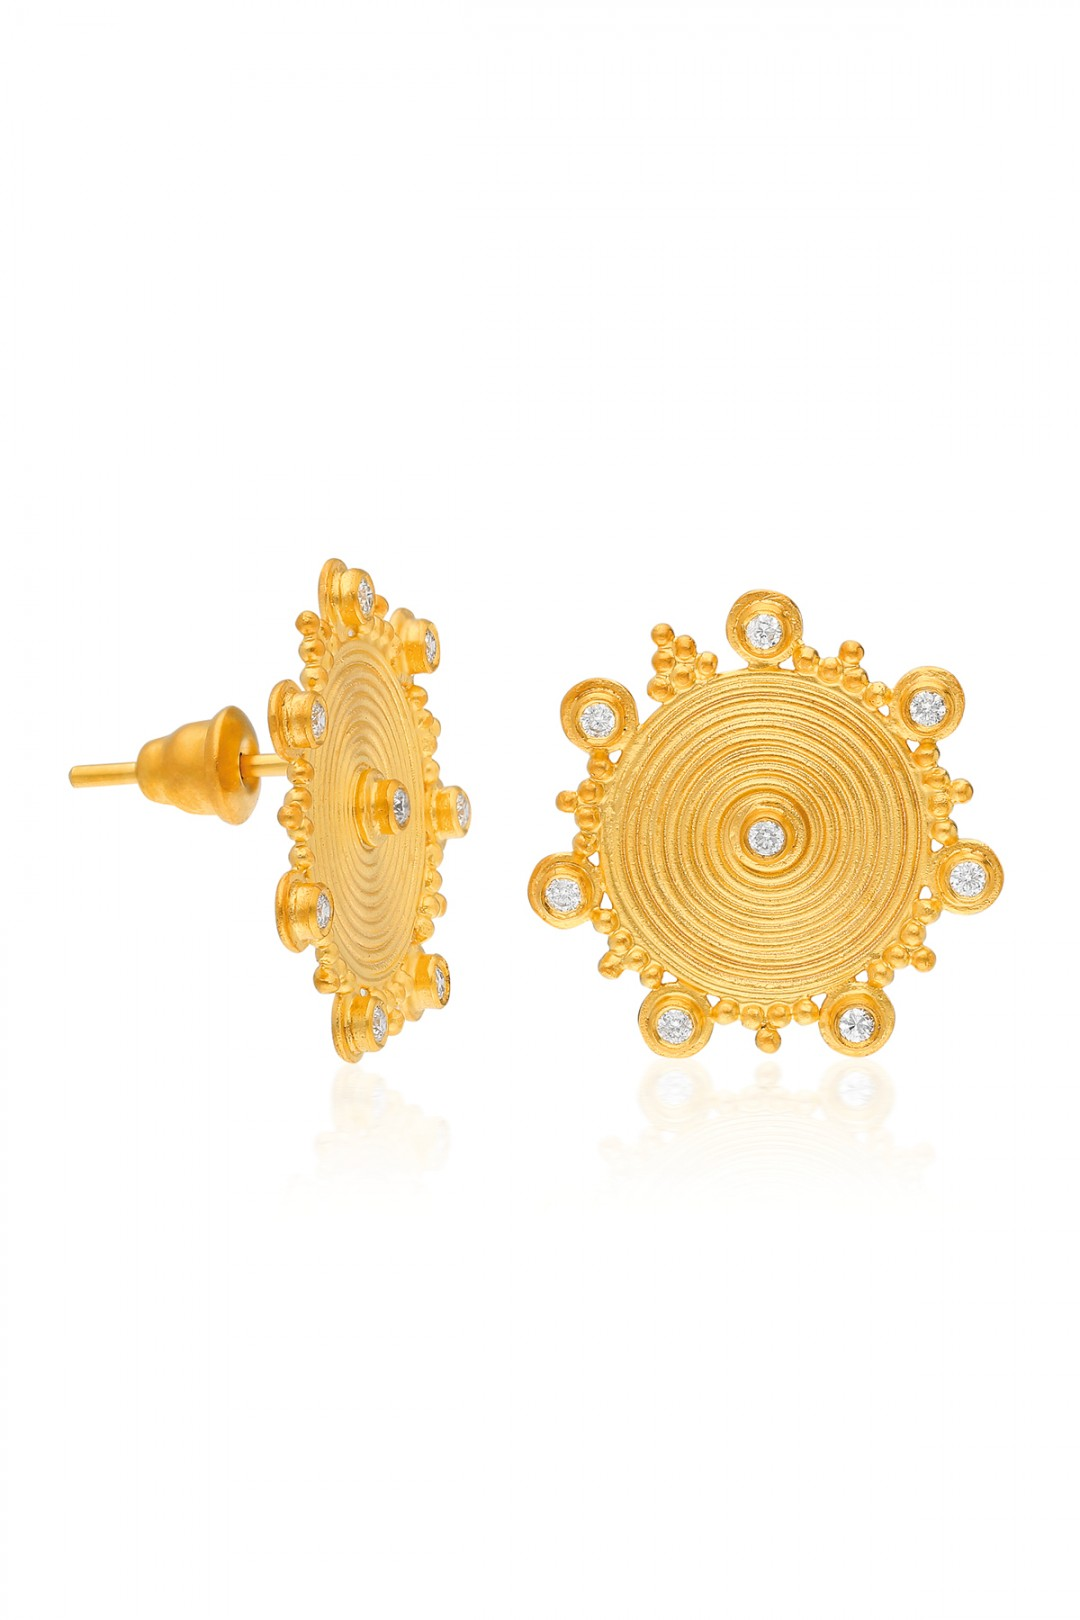 ANCIENT SPIRAL SUN, DIAMOND AND MINI BALLS EARRING